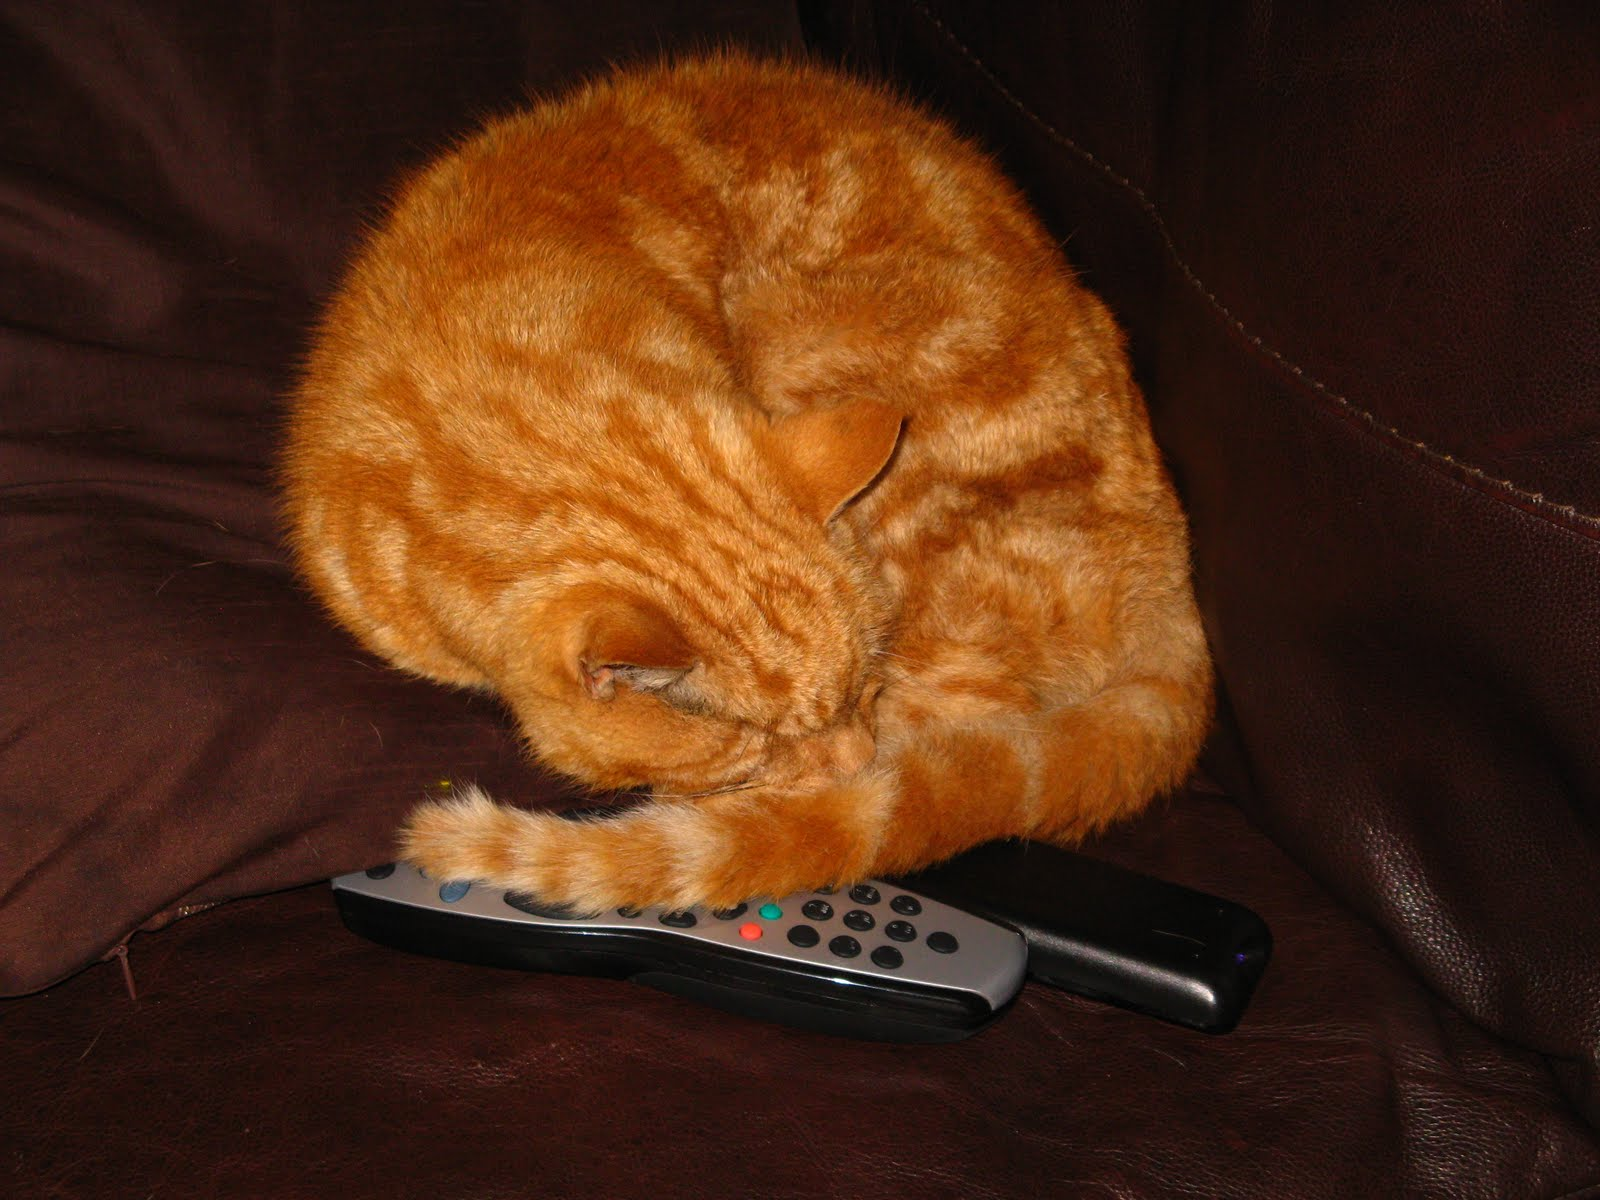 Don't Touch My Remote!